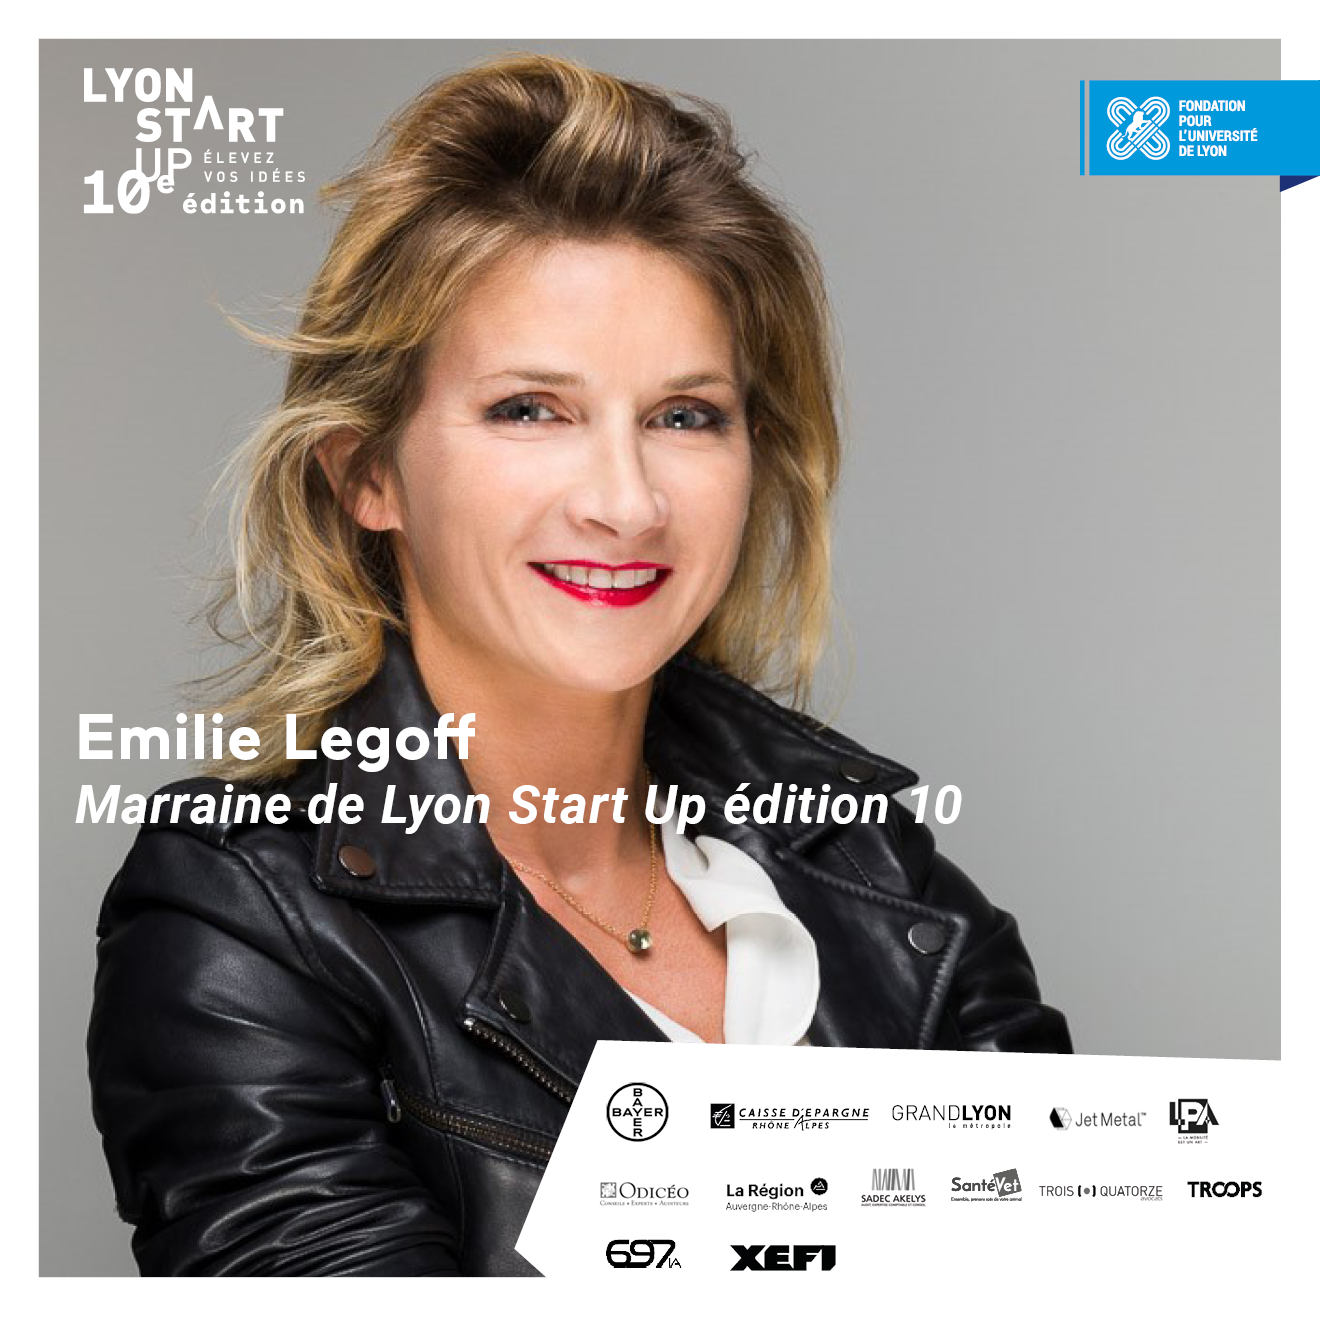 Image de l'article [PORTRAIT DE] Émilie Legoff - Marraine de Lyon Start Up édition 10